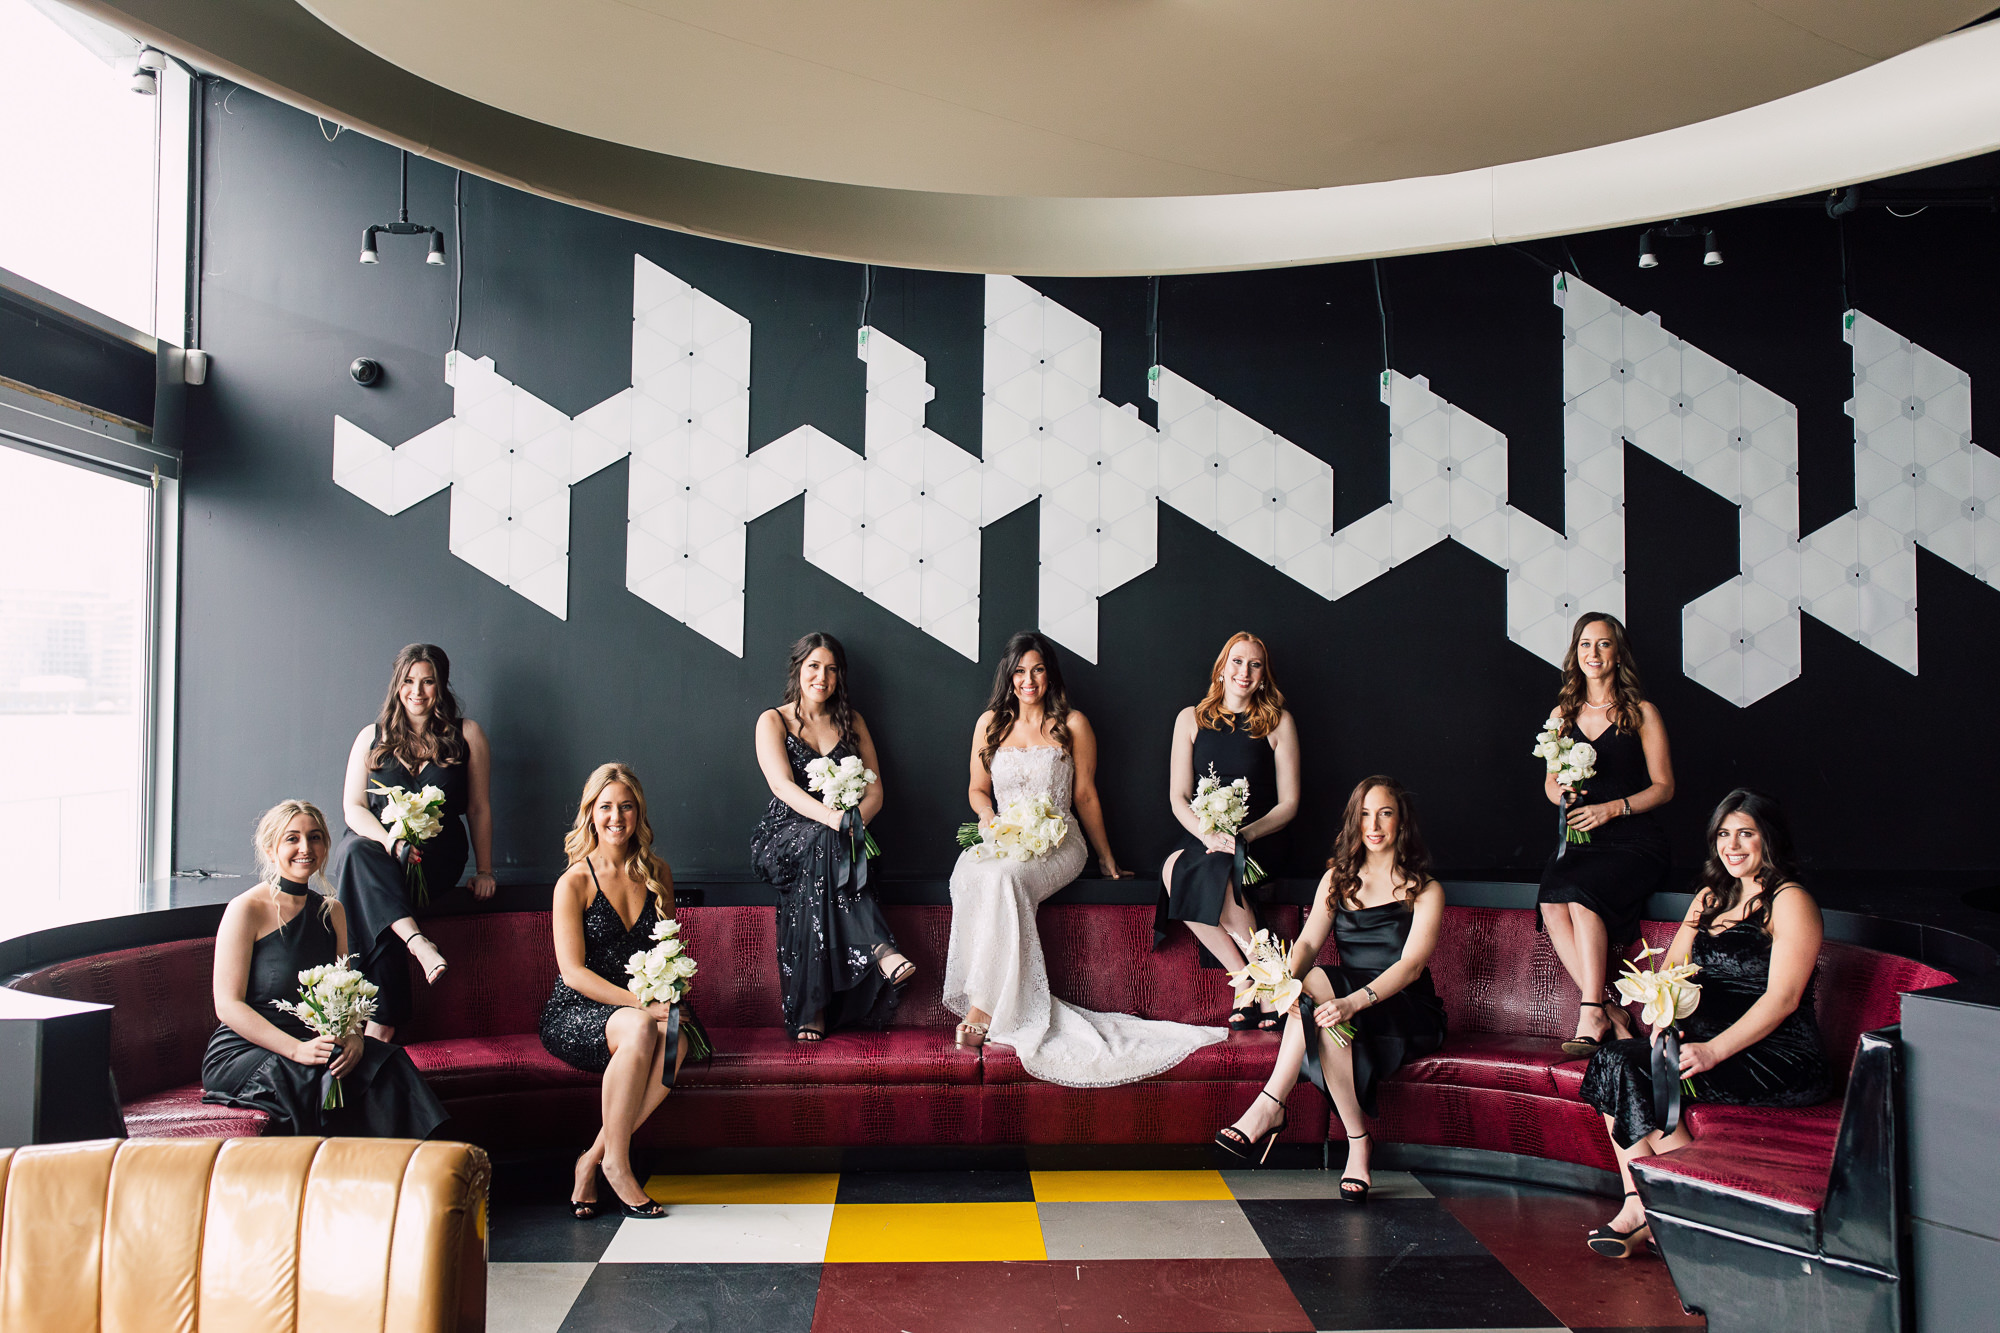 edgy bridal party